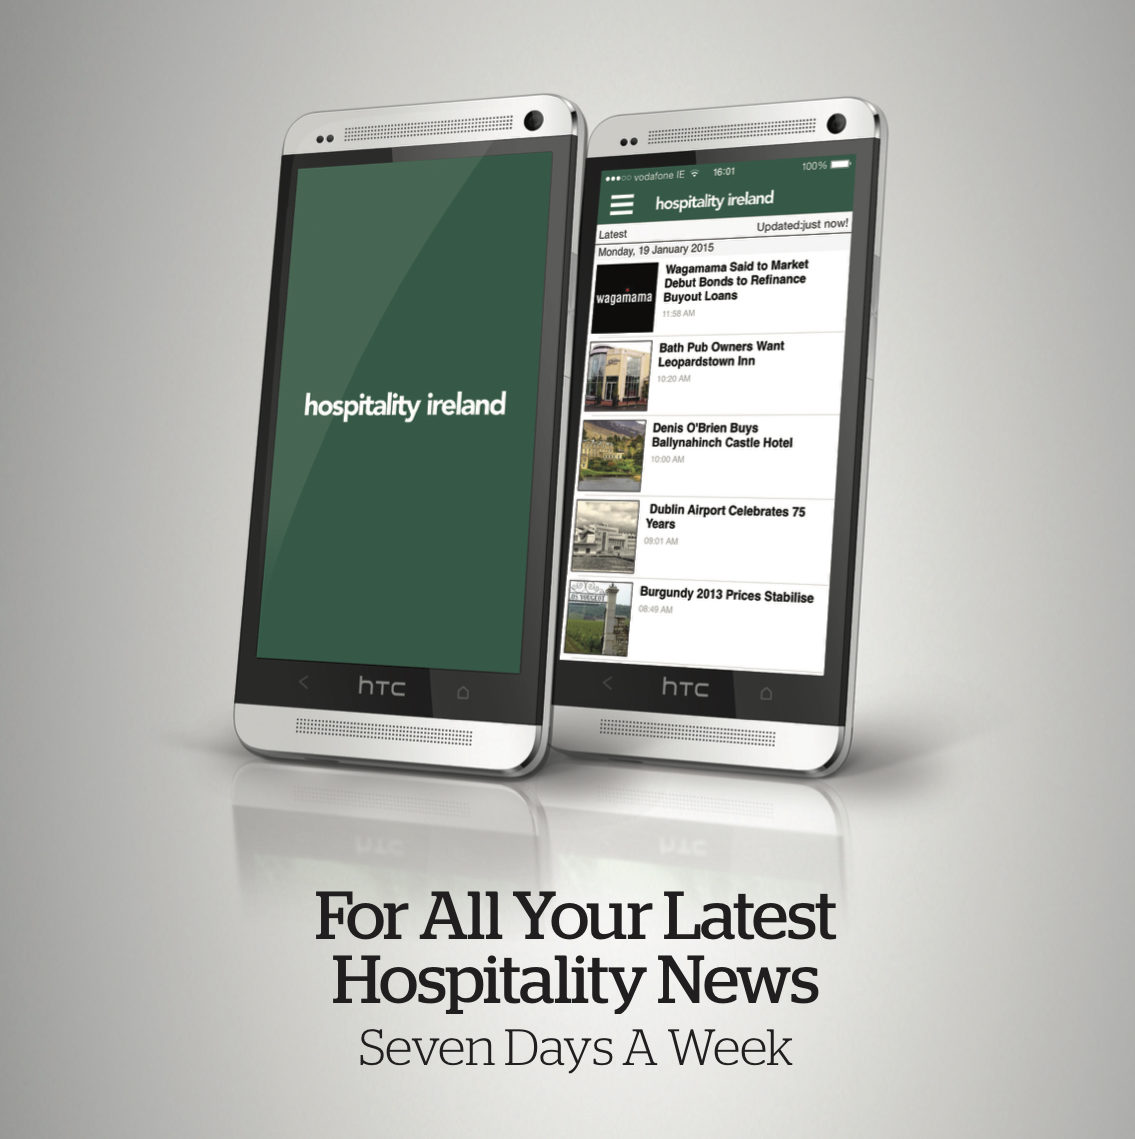 An image of the Hospitality Ireland app on mobile devices.